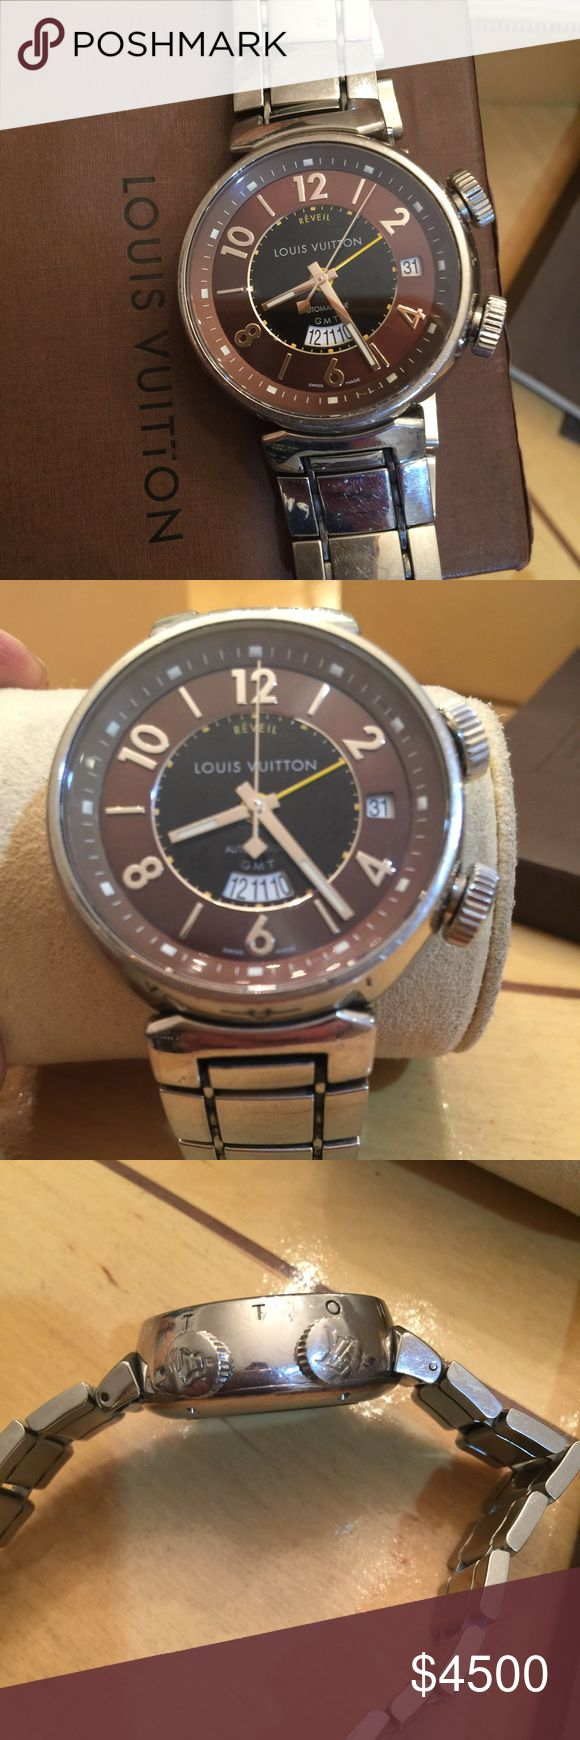 LOUIS VUITTON MENS WATCH 💯% authentic Reveil automatique GMT / caliber LV 113 /thirty one jewels 💎 Swiss made,/wrist band stainless steel Swiss made/  with alarm , date at 3 o'clock,last service at Louis Vuitton  store in San Diego CA on January 2016 .it comes with original box and, book service, this is one unique watch, metal wrist was ordered separately cost $1,000.00 and watch $10,000.00 +tax Louis Vuitton Accessories Watches